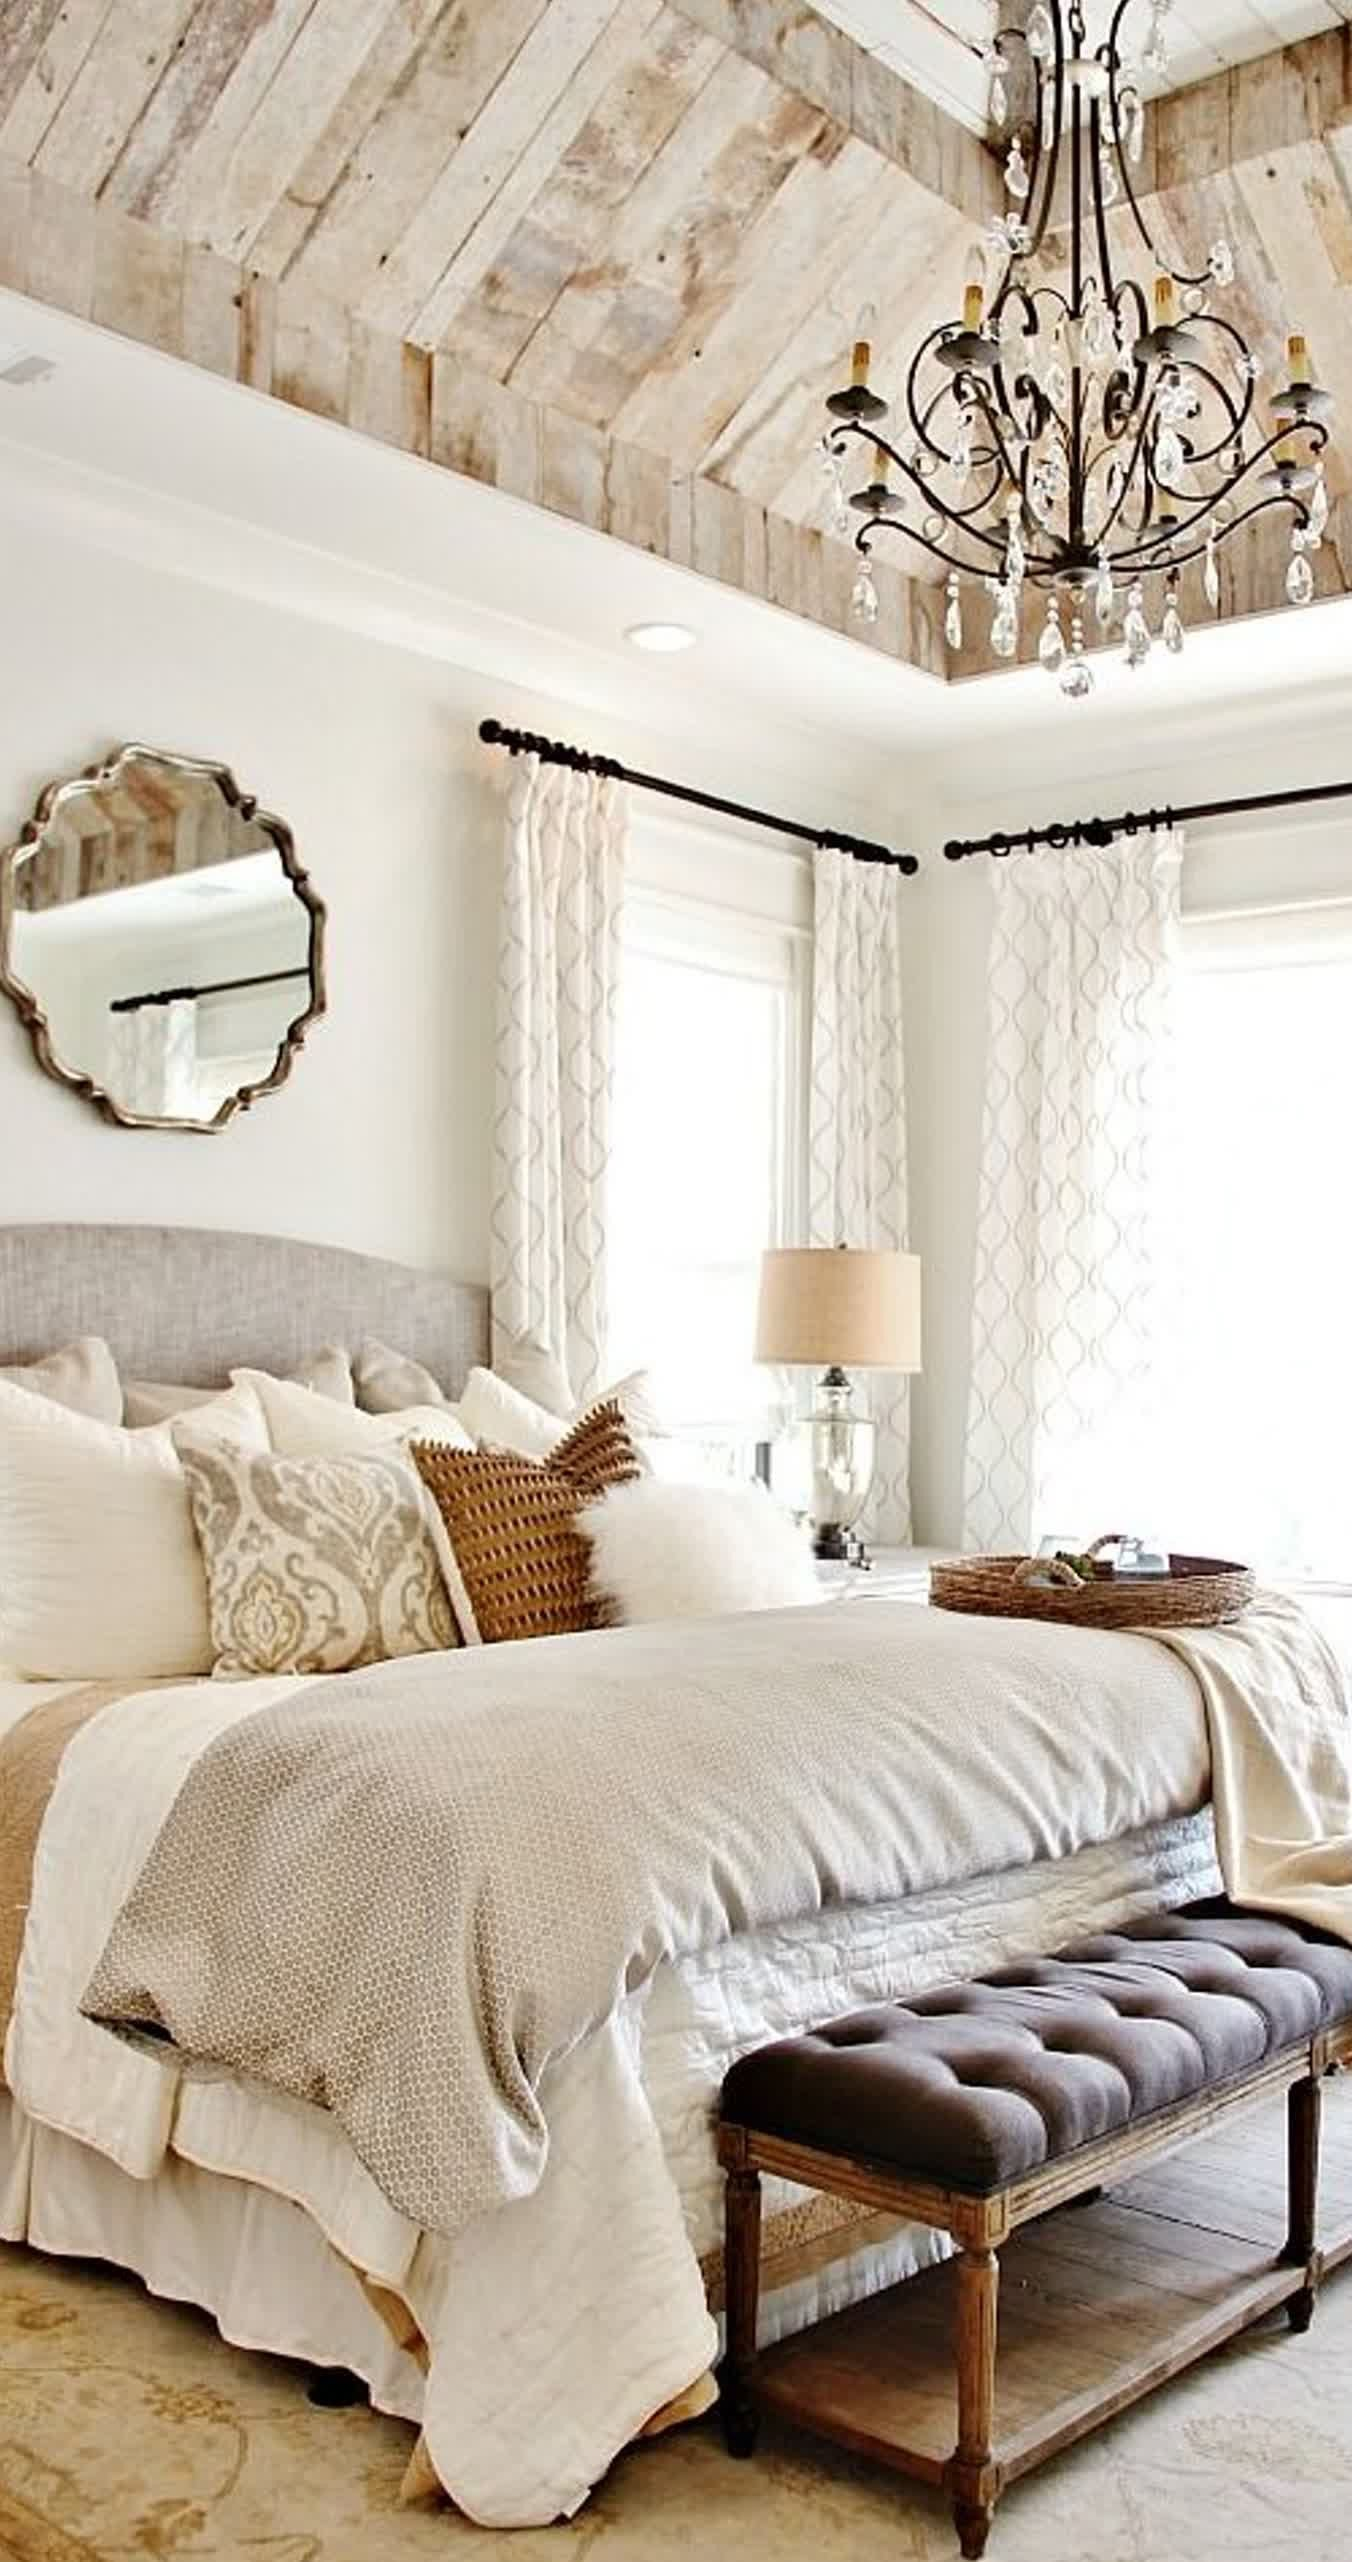 Best Modern Rustic Farmhouse Bedroom Buyerselect With Pictures